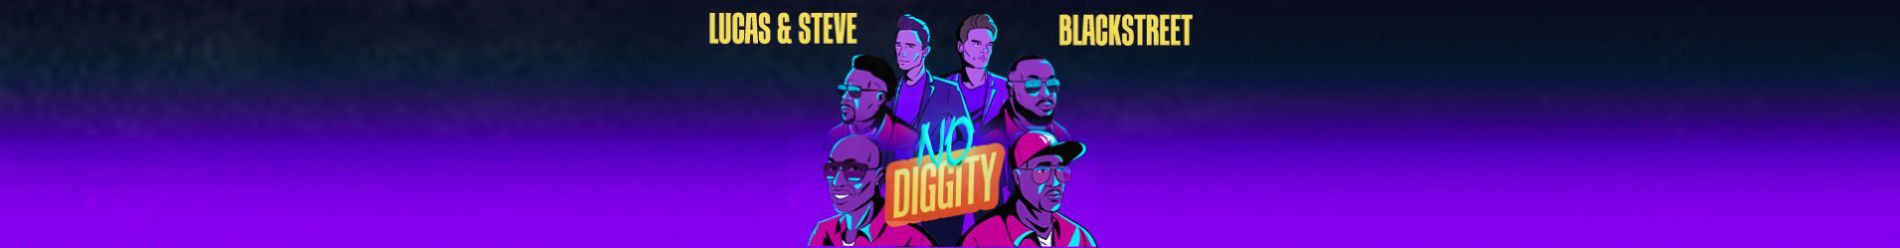 Save 'No Diggity' to your favorites to win LG earbuds and a 'Letters to Remember' vinyl!